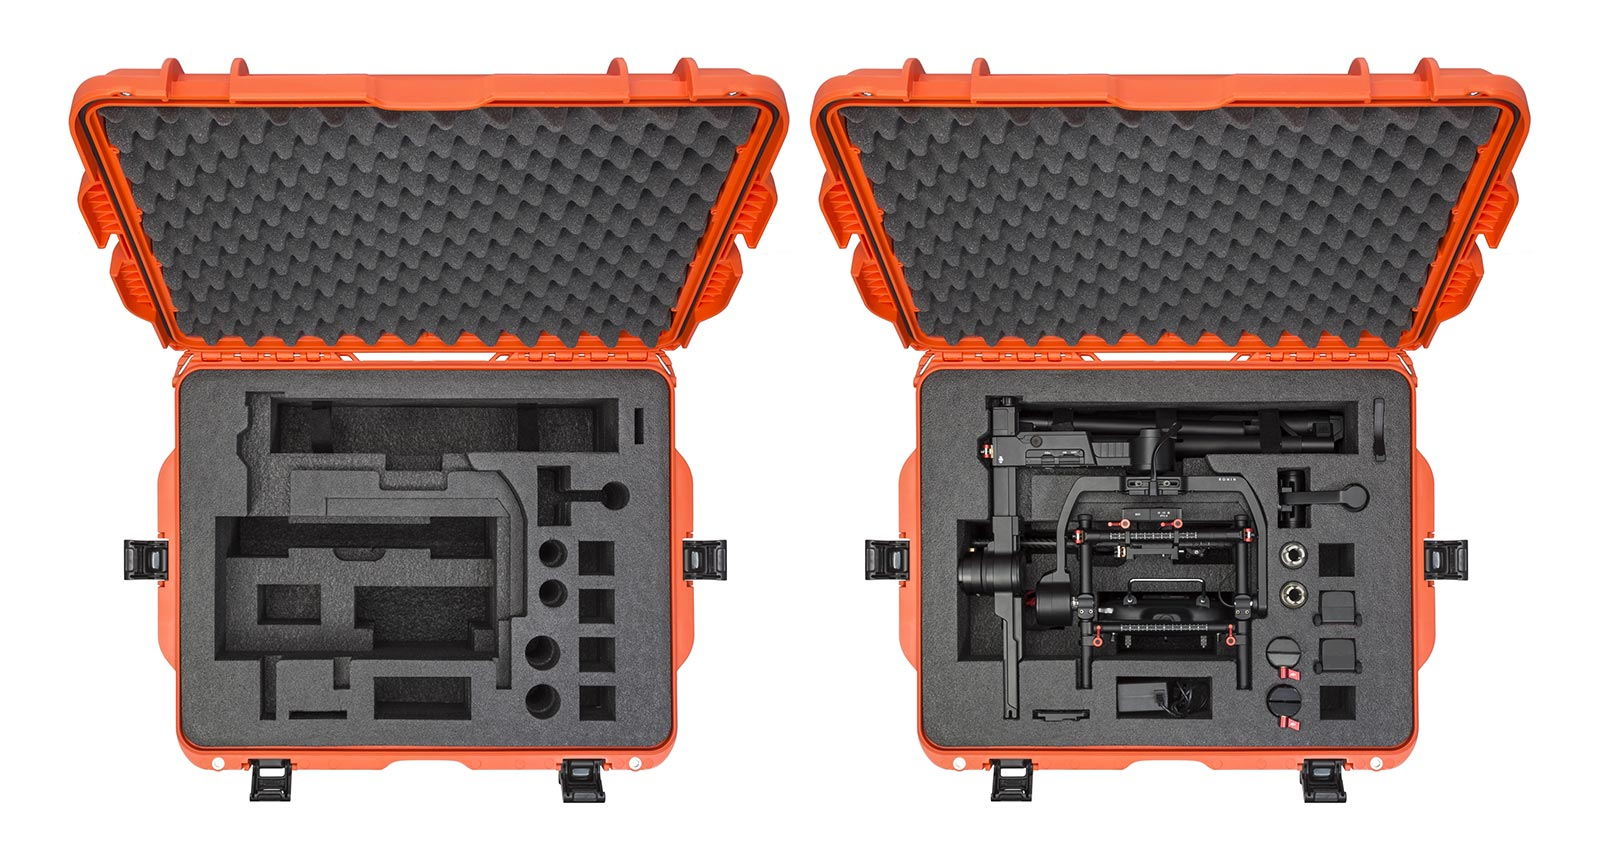 Nanuk 960 DJI Ronin-MX Top View